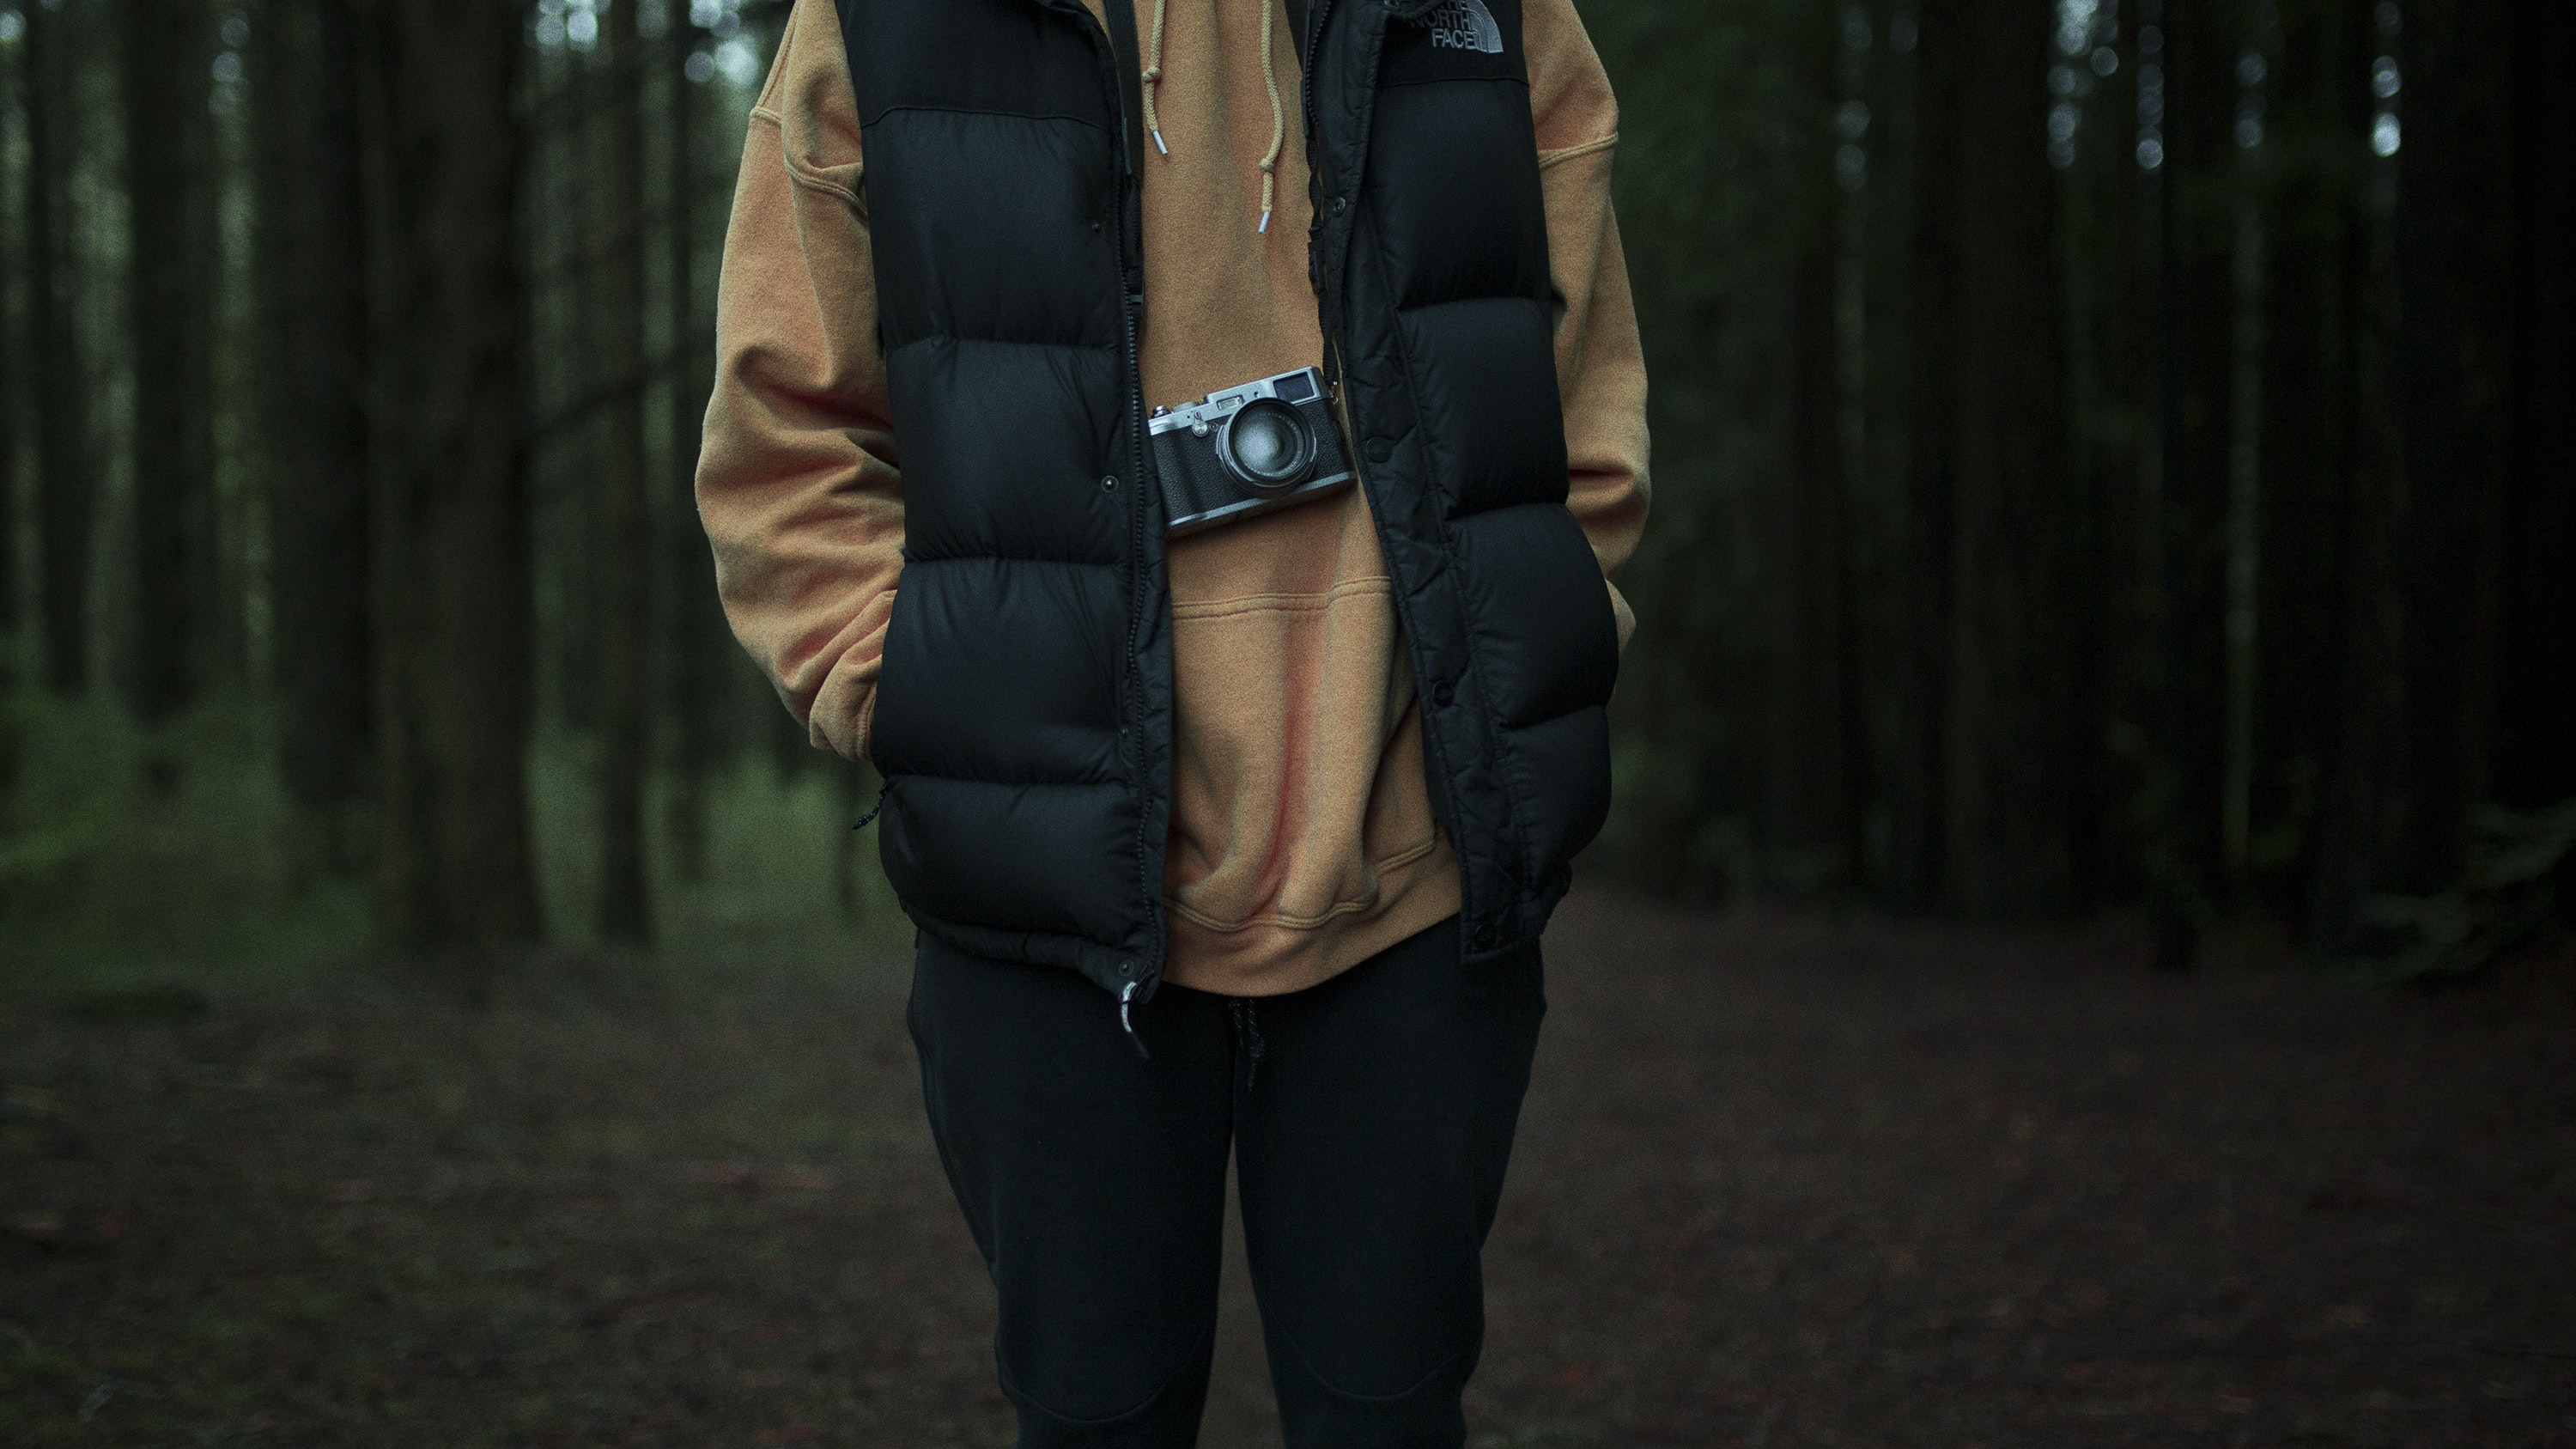 Close-up of a person with a camera hanging from their neck in a forest